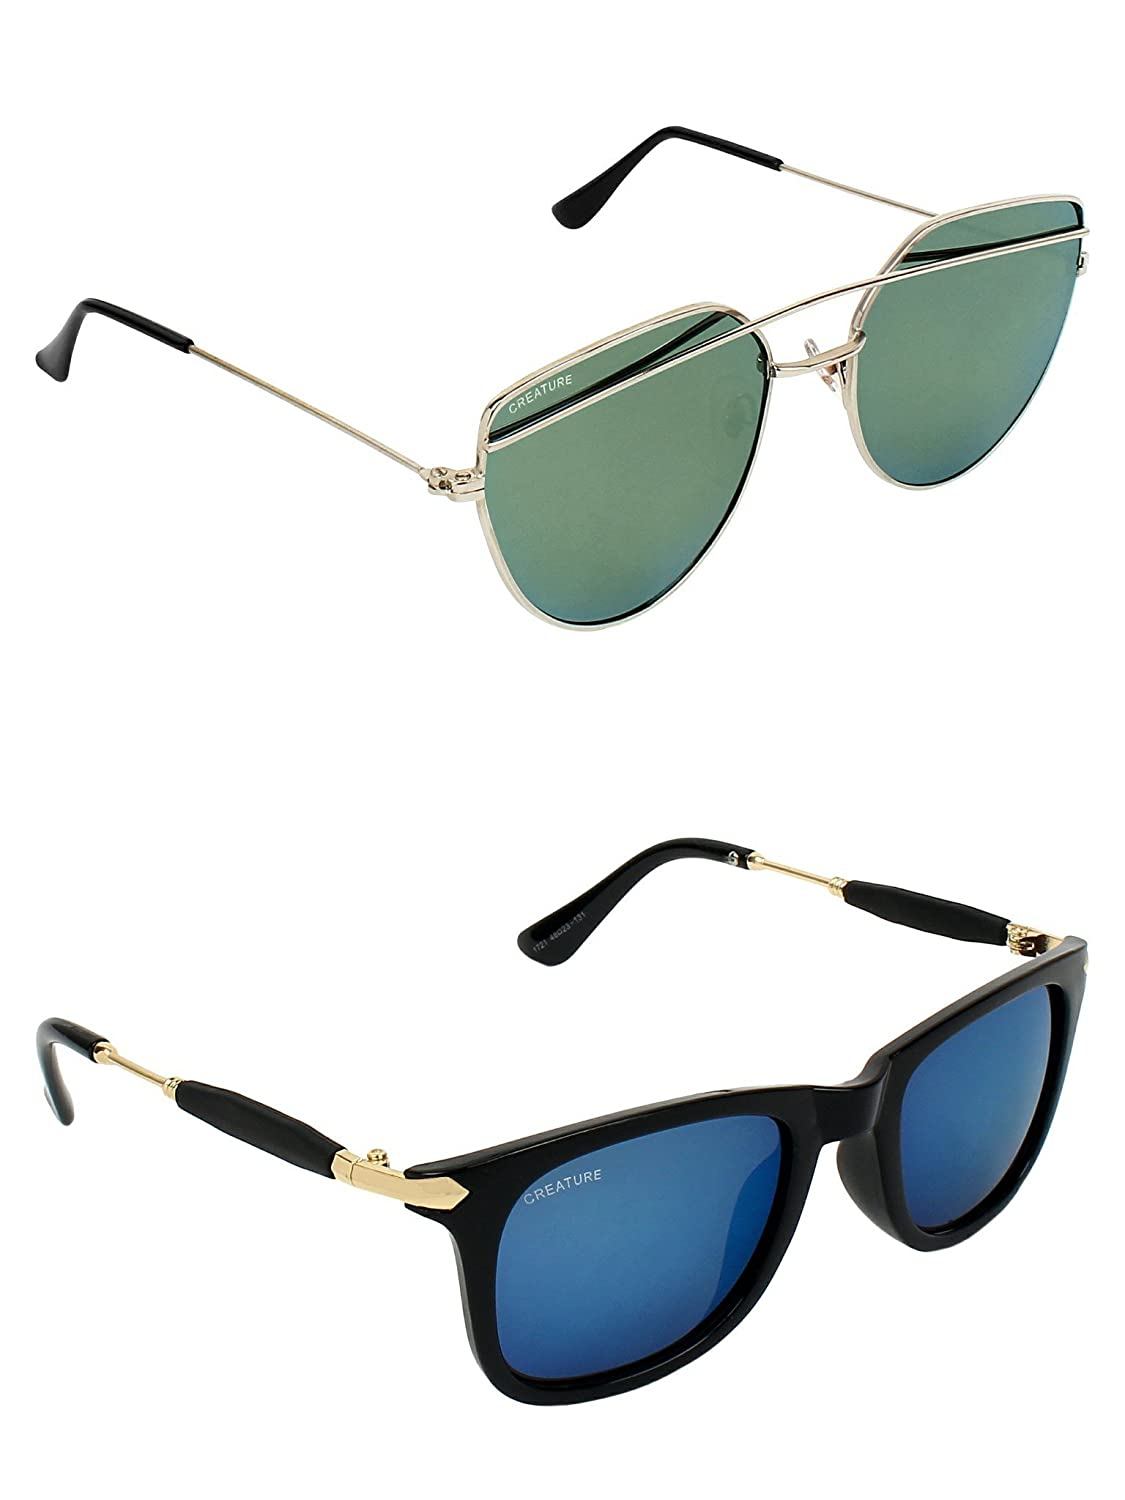 CREATURE   CREATURE Green & Blue Aviator Sunglasses Combo with UV Protection (Lens-Green & Blue Frame-Silver & Black)